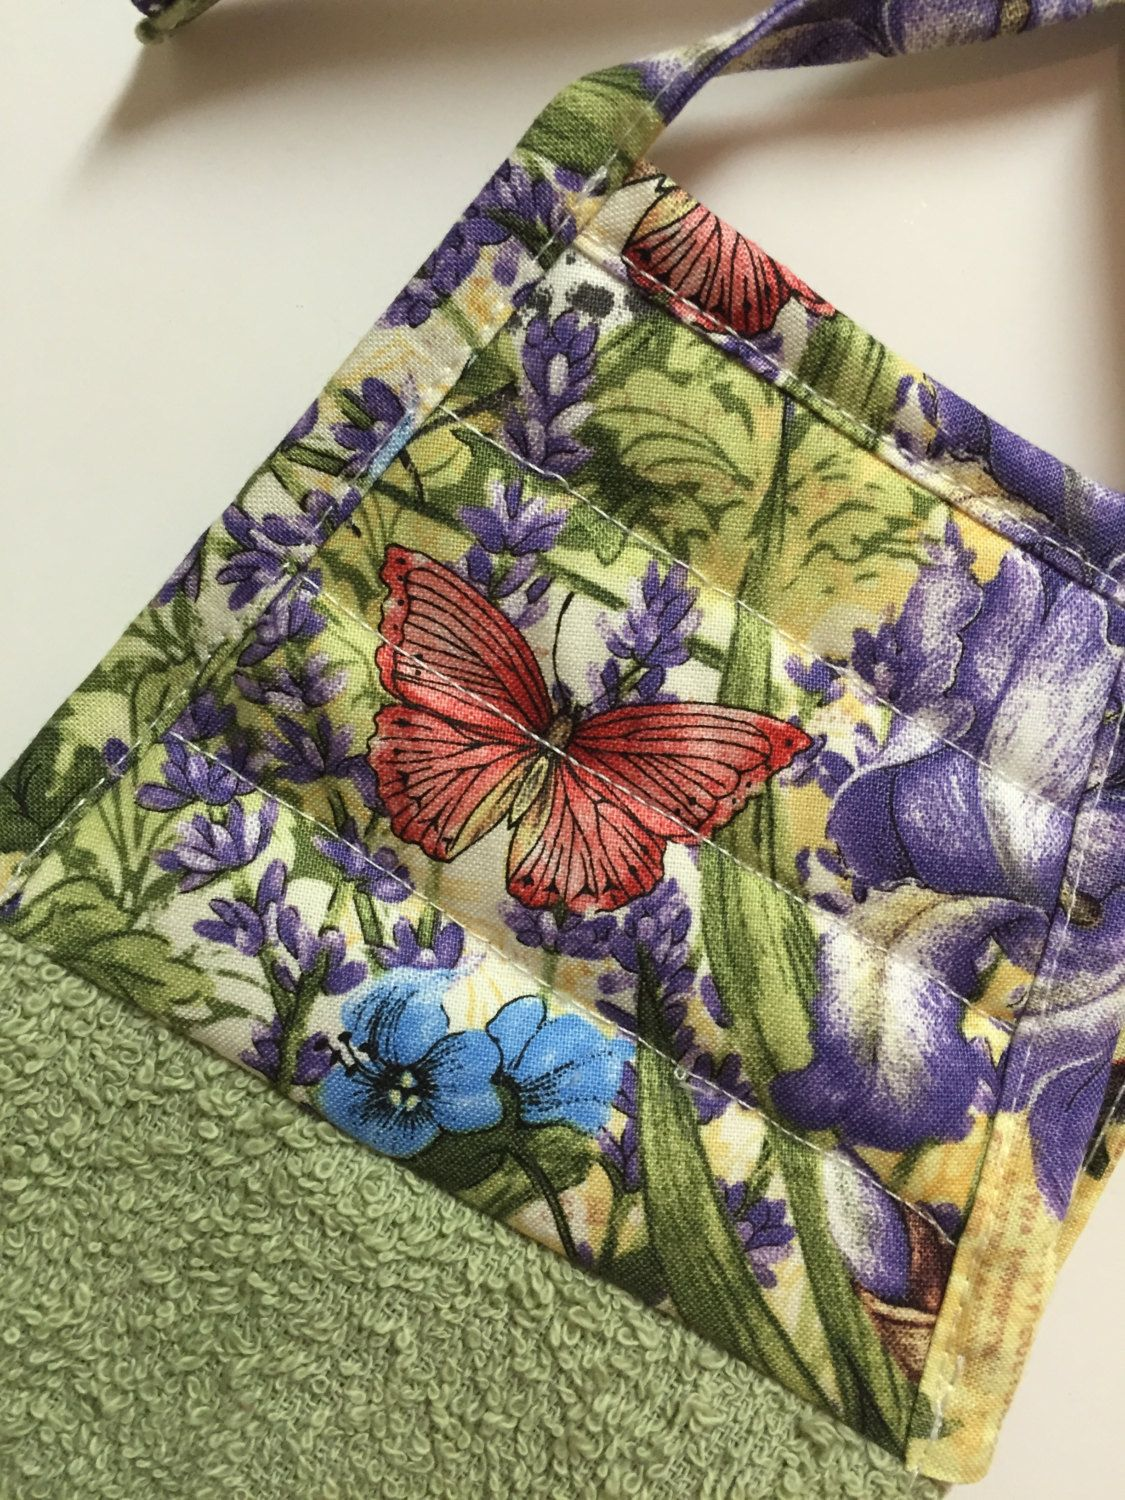 Butterfly Hand Towel,Dish Towel,butterfly,kitchen Towel,Butterfly  Decor,Hanging